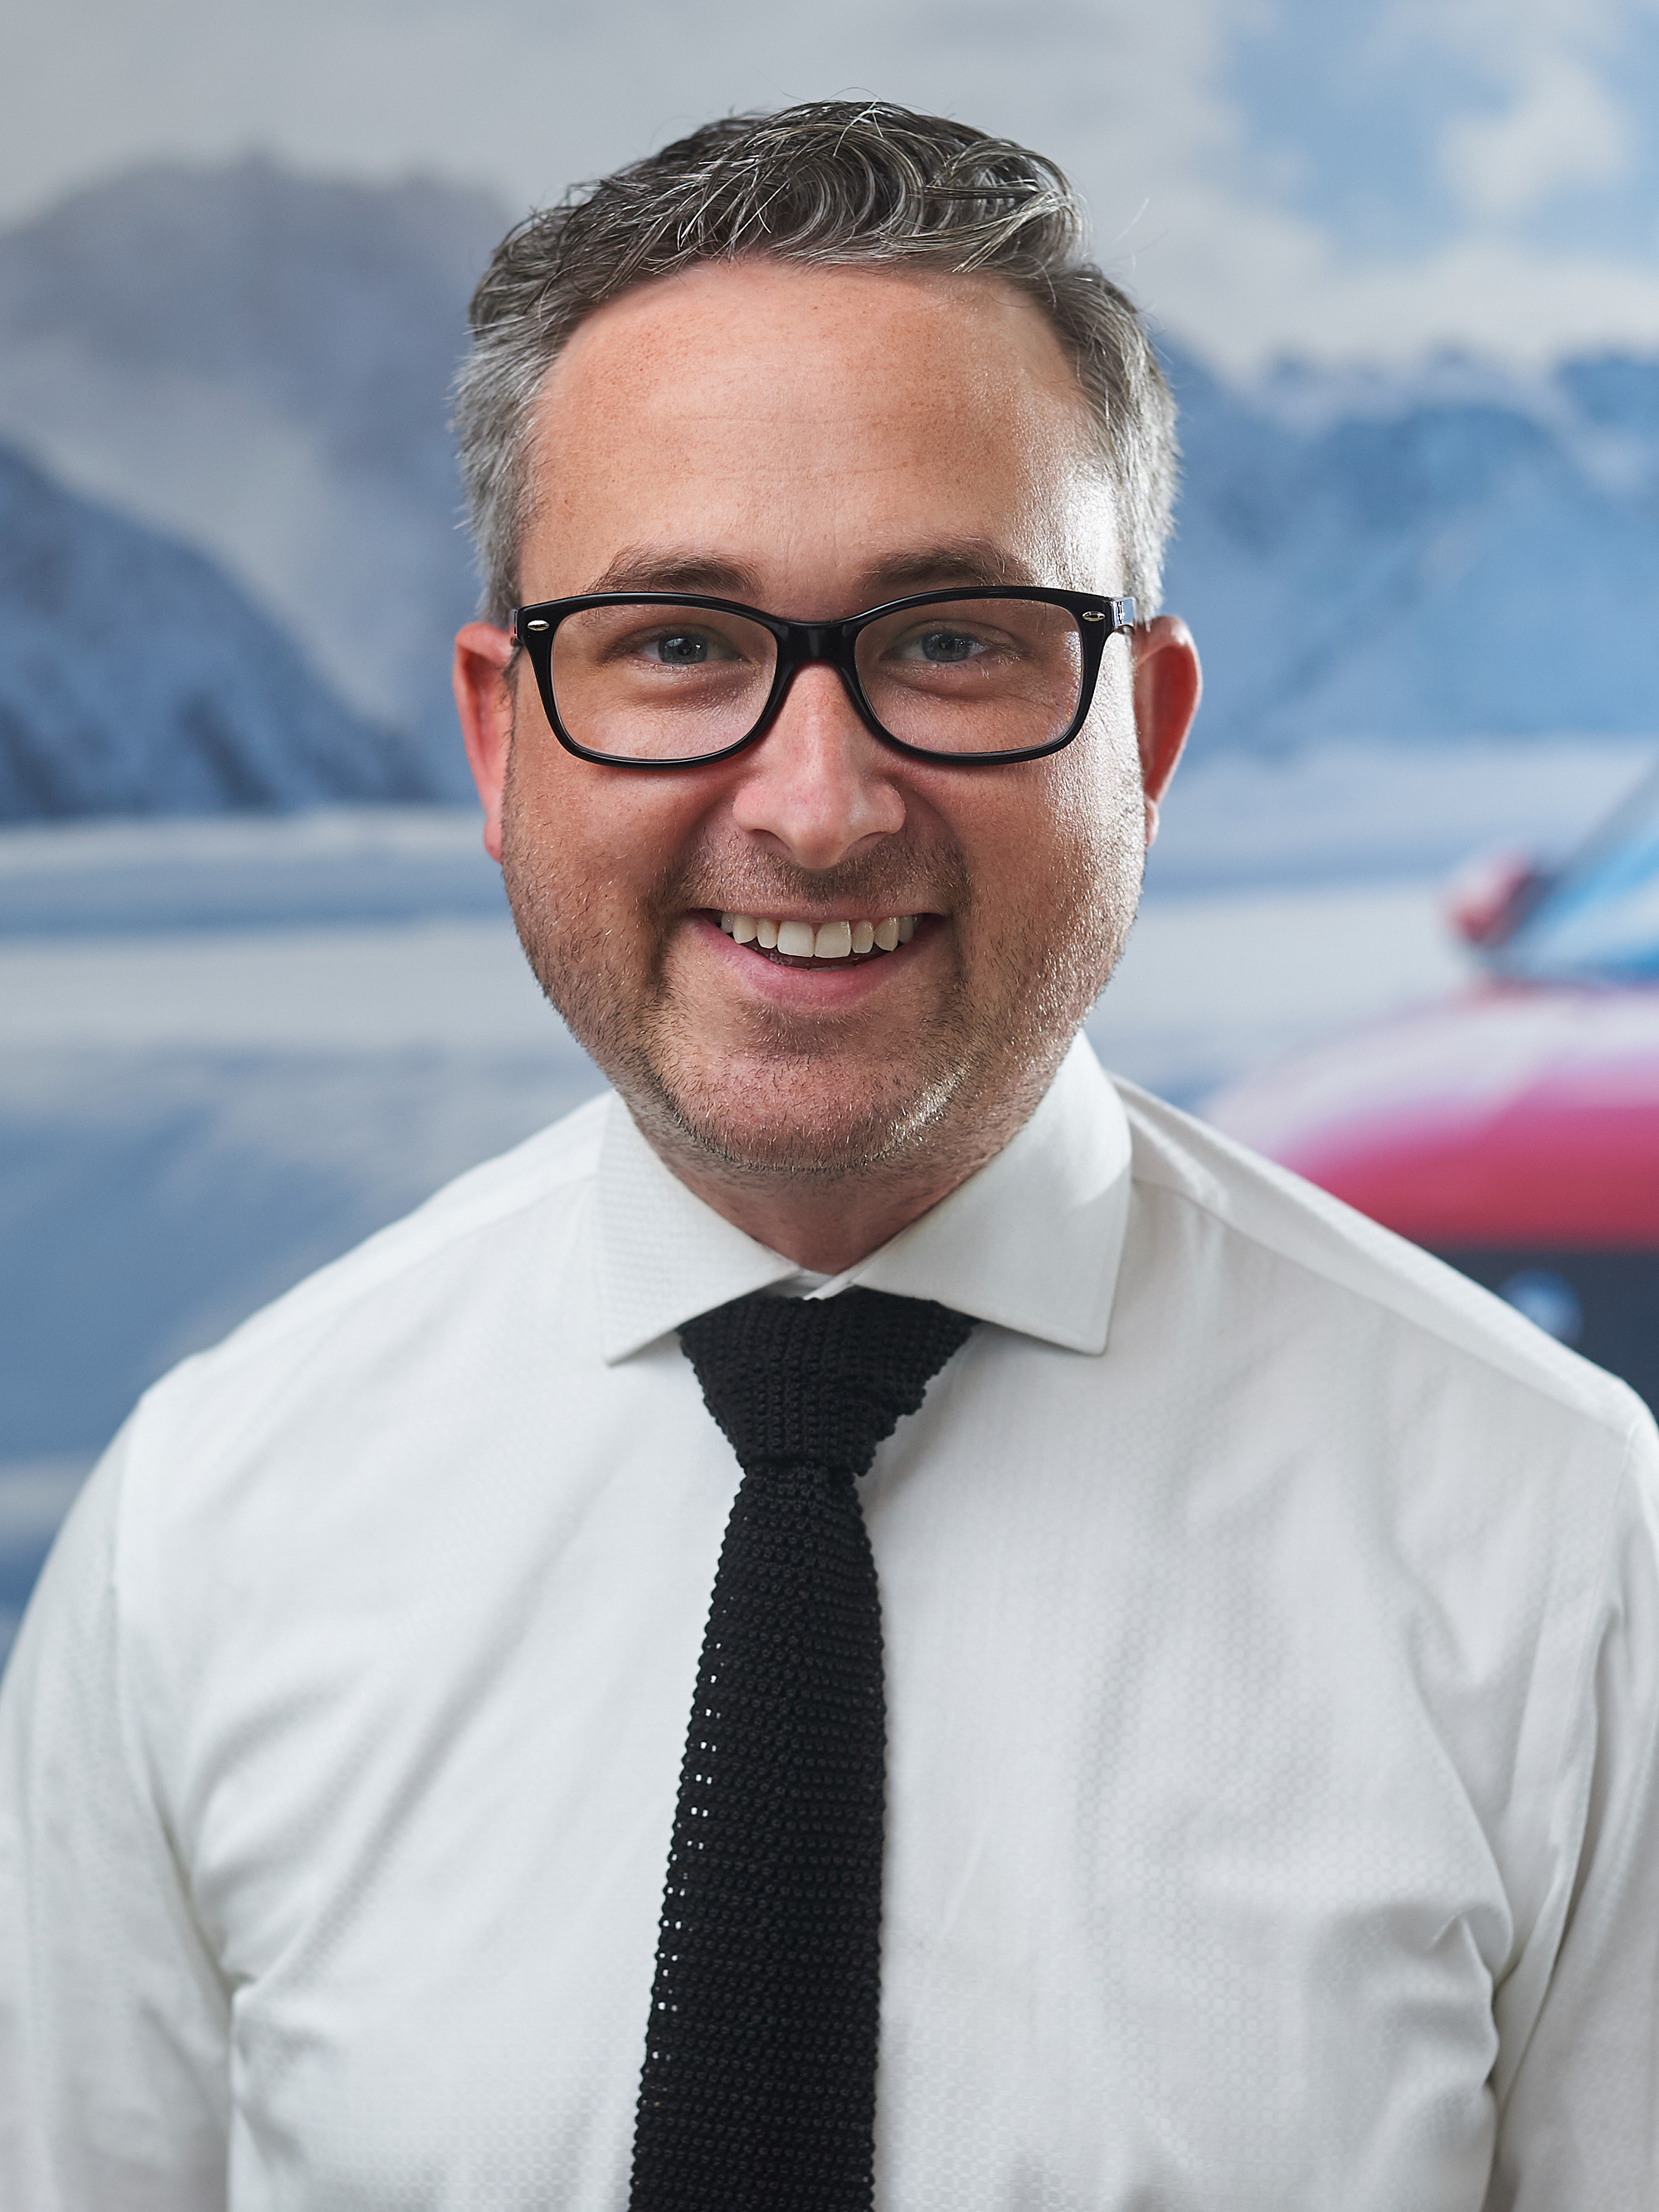 ANDREW CARTER - SALES MANAGER